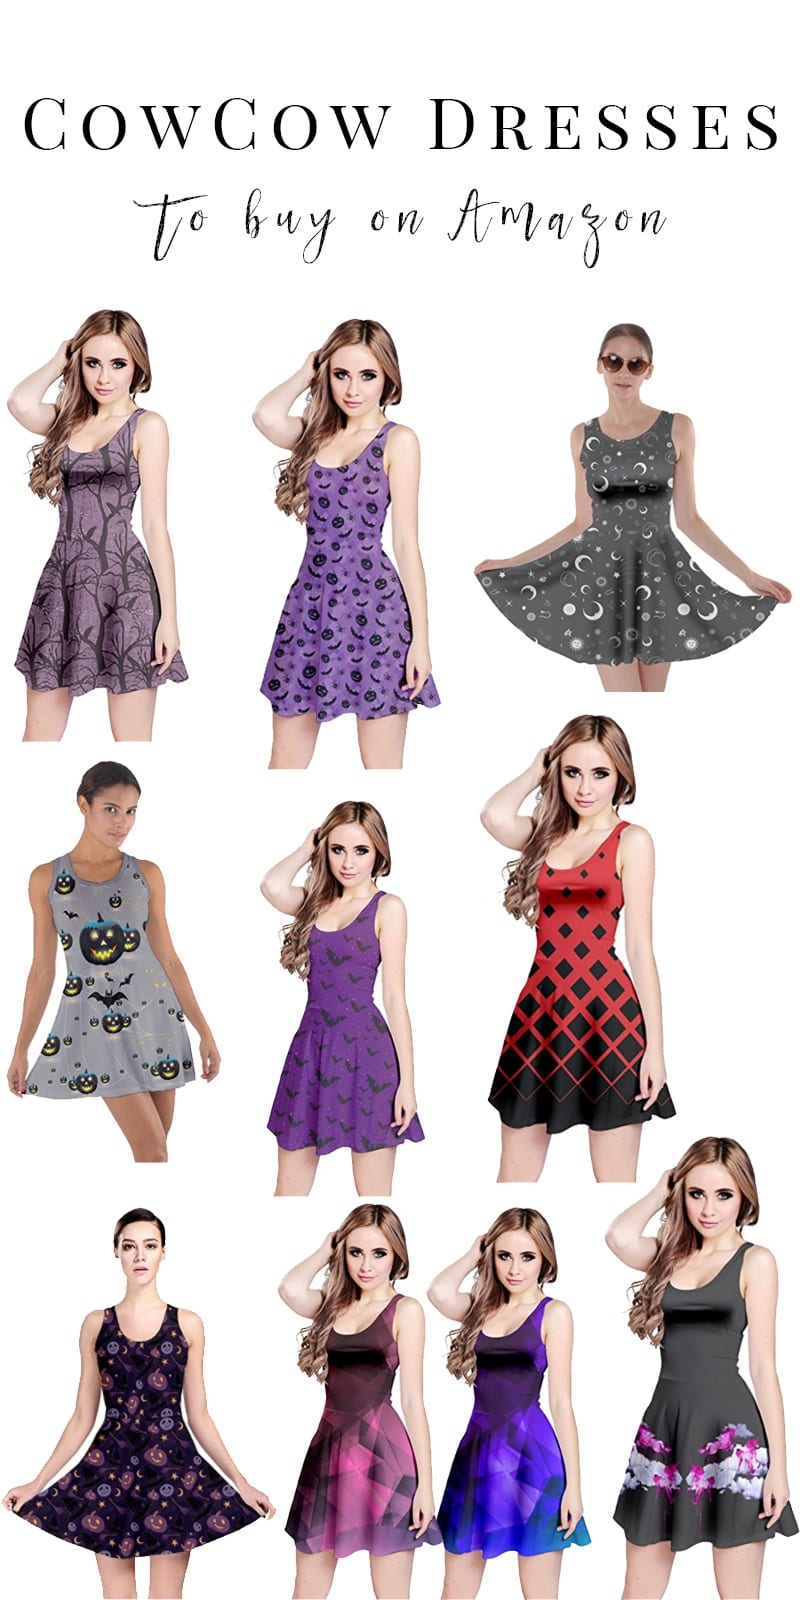 Top 10 CowCow dresses to buy on Amazon. CowCow dresses range in price from $12 to $21. They're extremely comfortable to wear in the hot humid heat of the eternal Florida Summer.